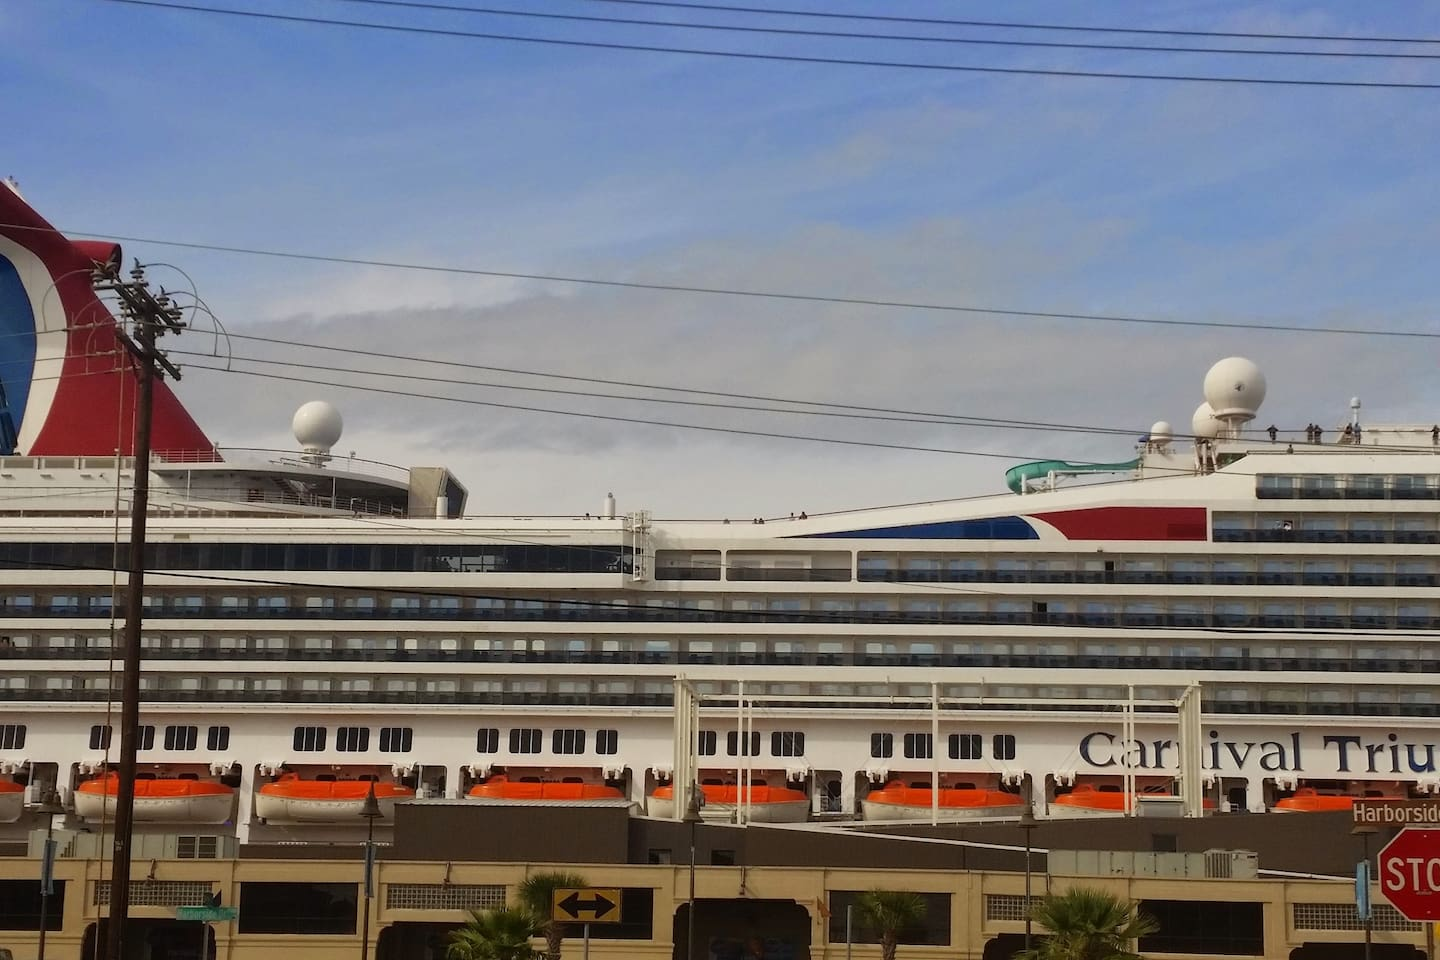 Can we cruise with you for the day or two before the Bon Voyage!